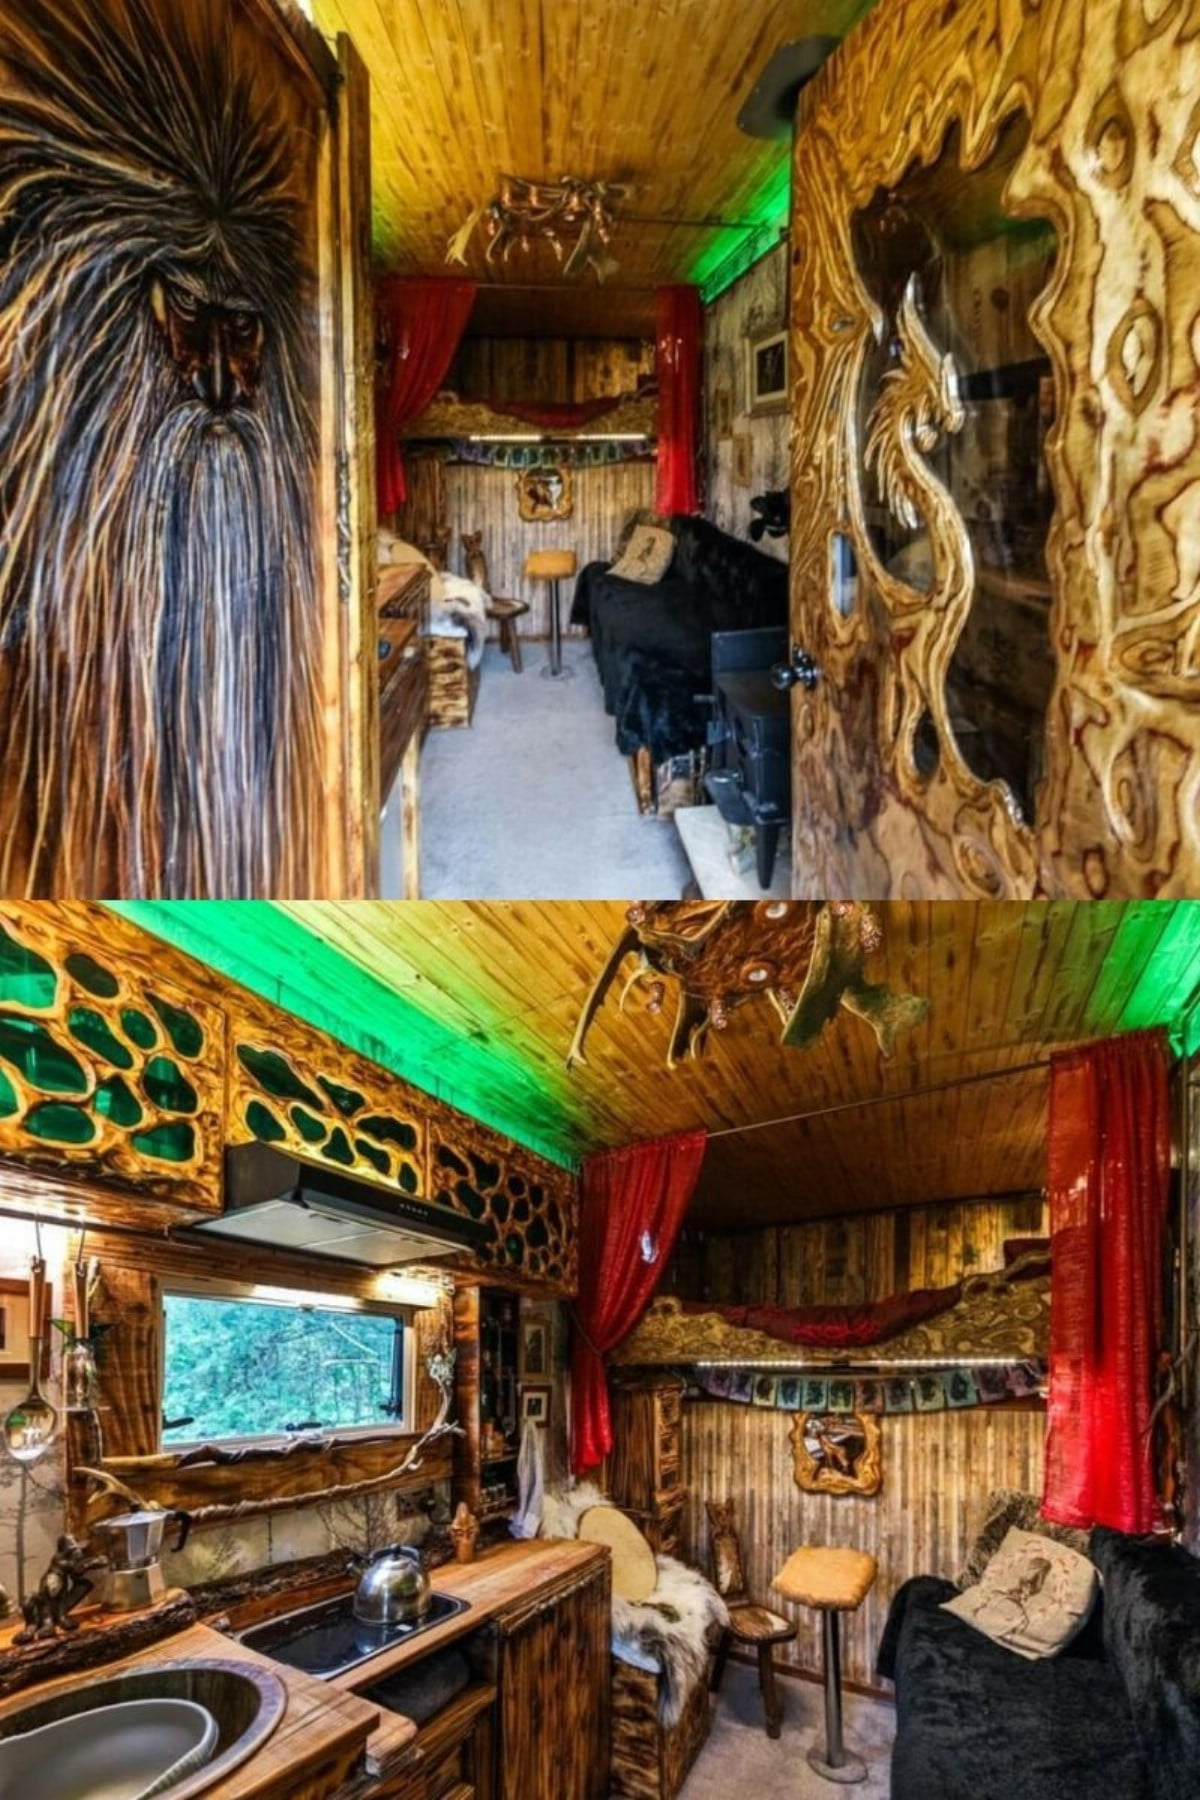 LotR Van Conversion